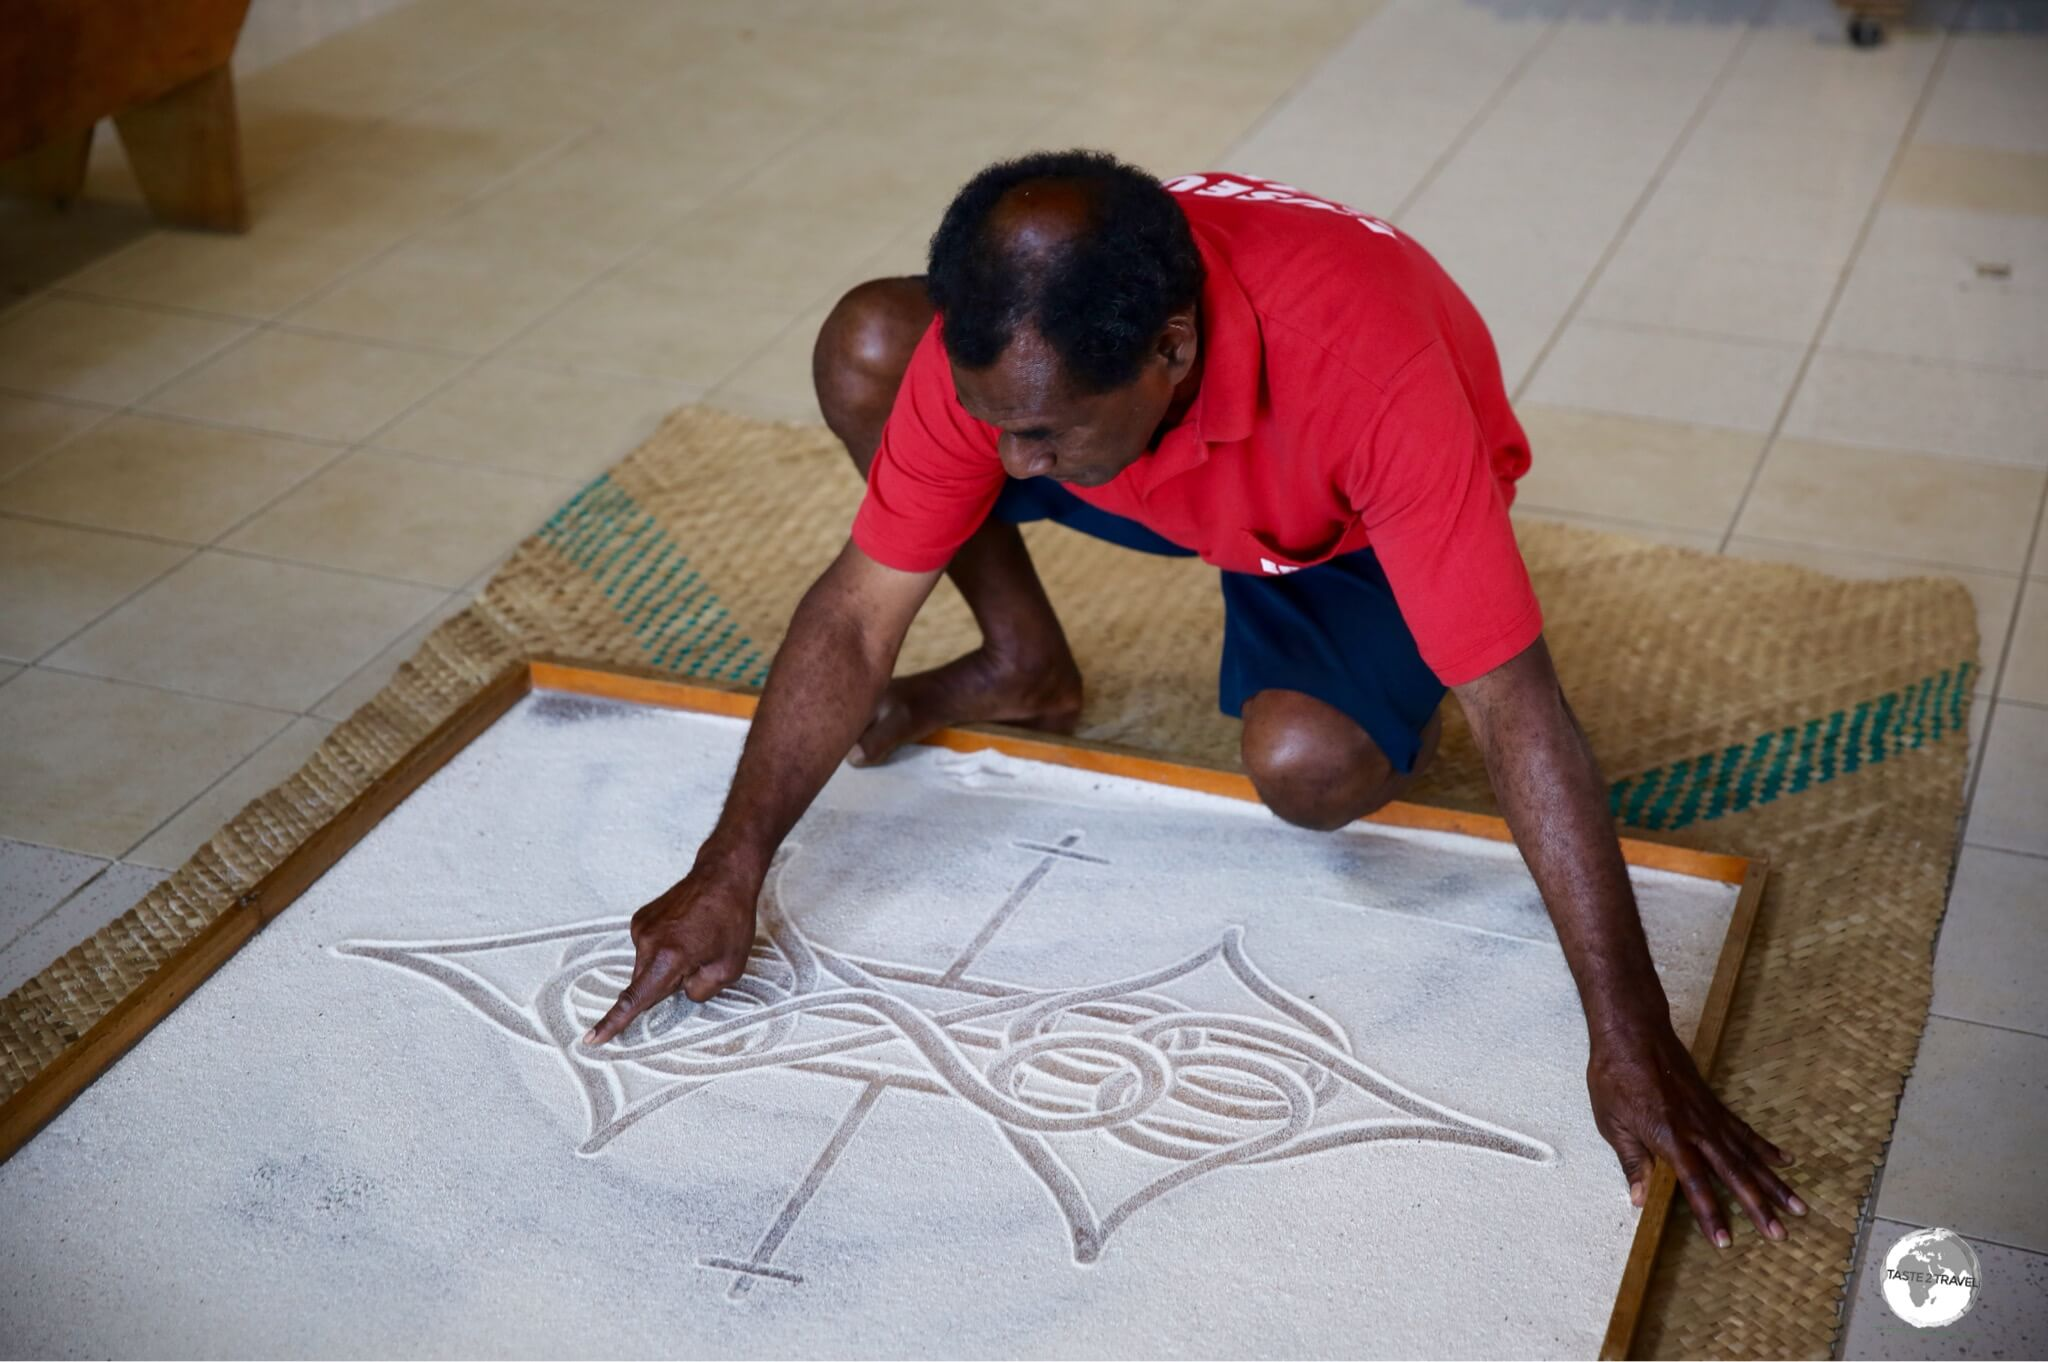 Edgar Hinge of the National Museum, telling a story using the ancient art of Sand-drawing.